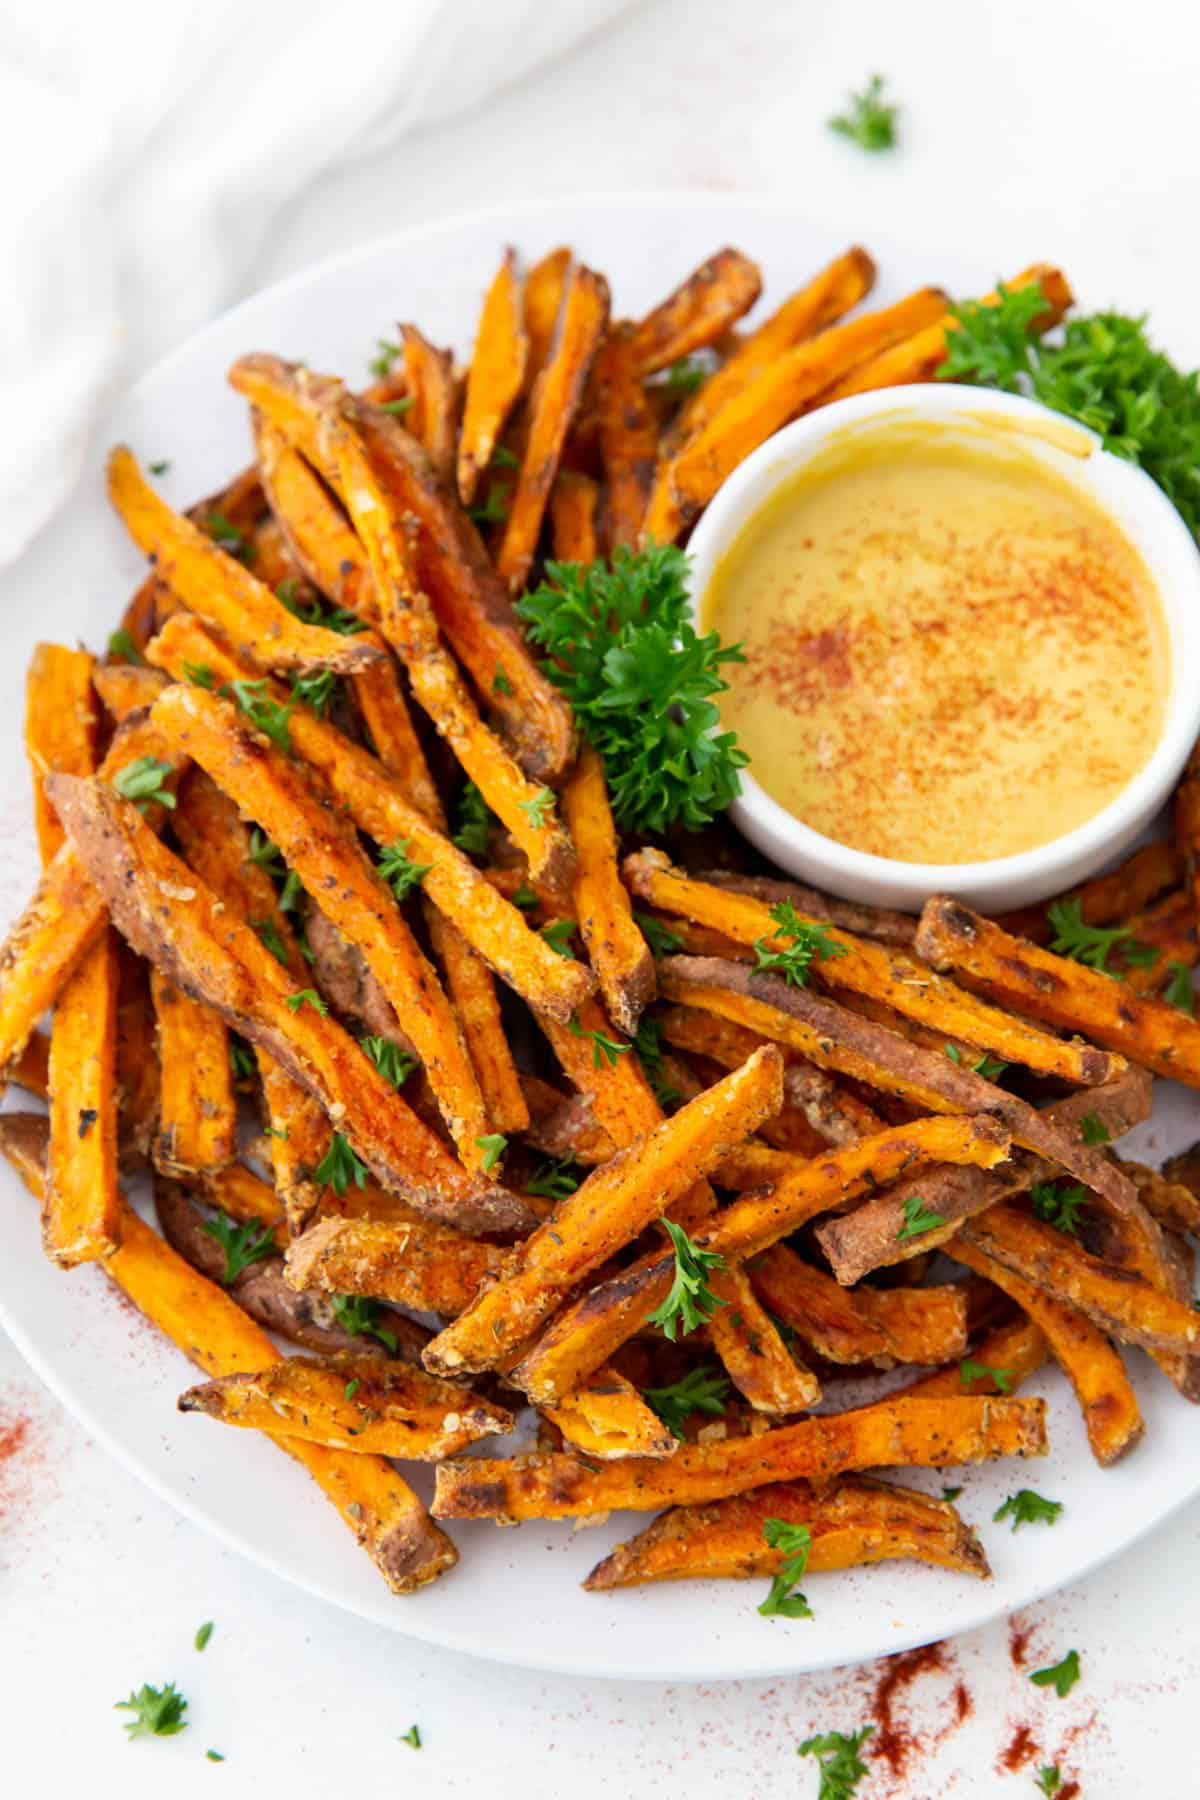 A large plate of fresh sweet potato fries on a white plate garnished with parsley and a small white bowl of mustard for dipping.